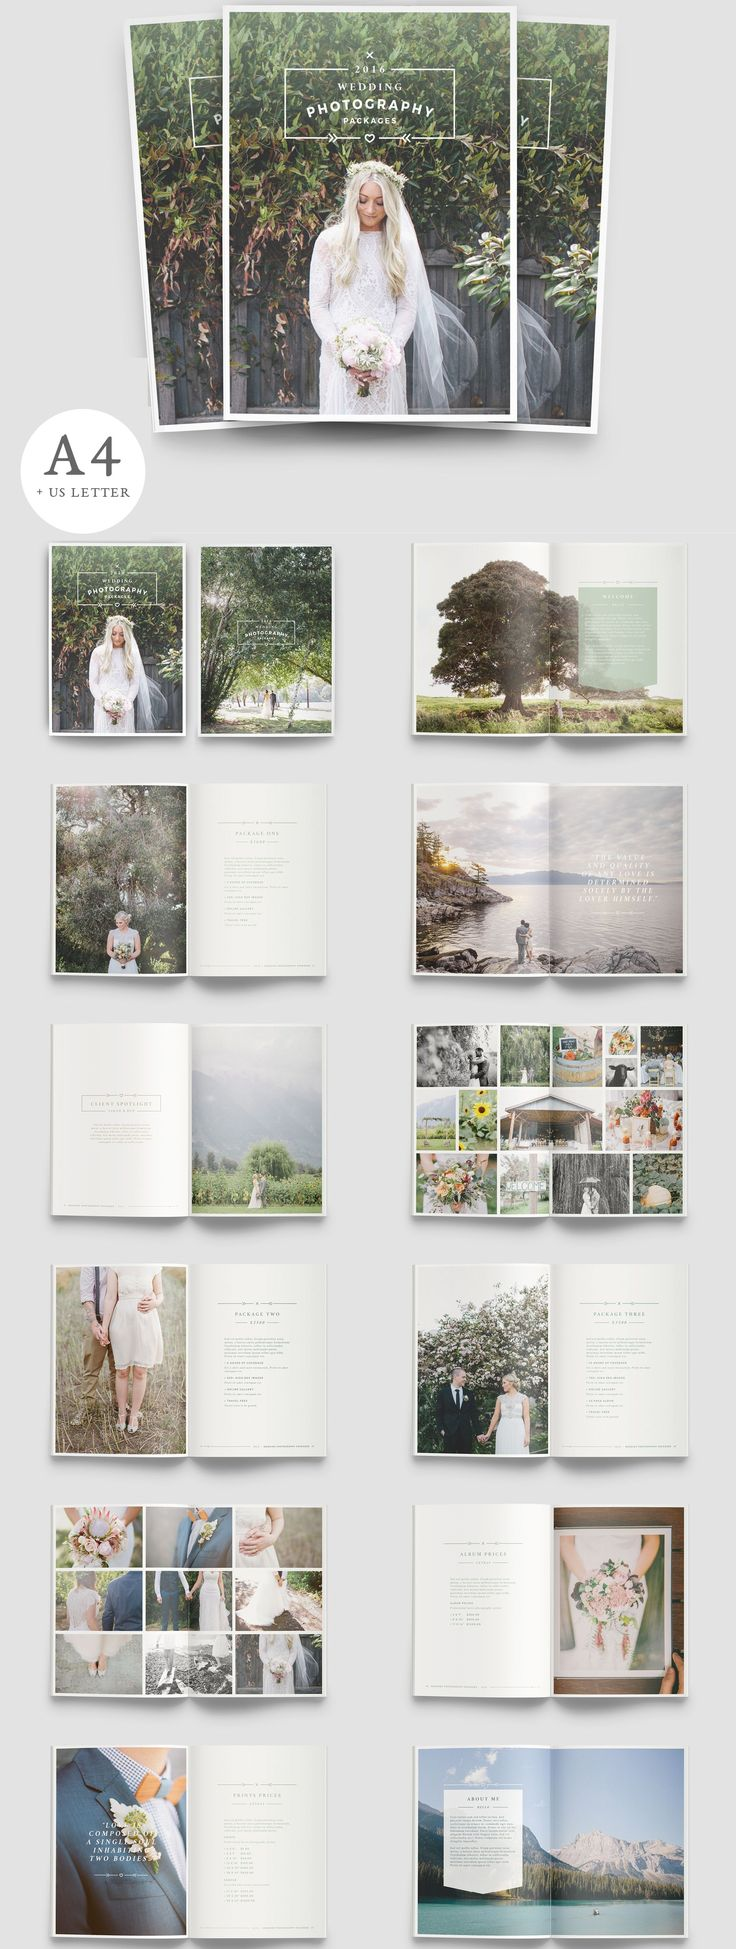 best 25+ photography brochure ideas on pinterest | photography